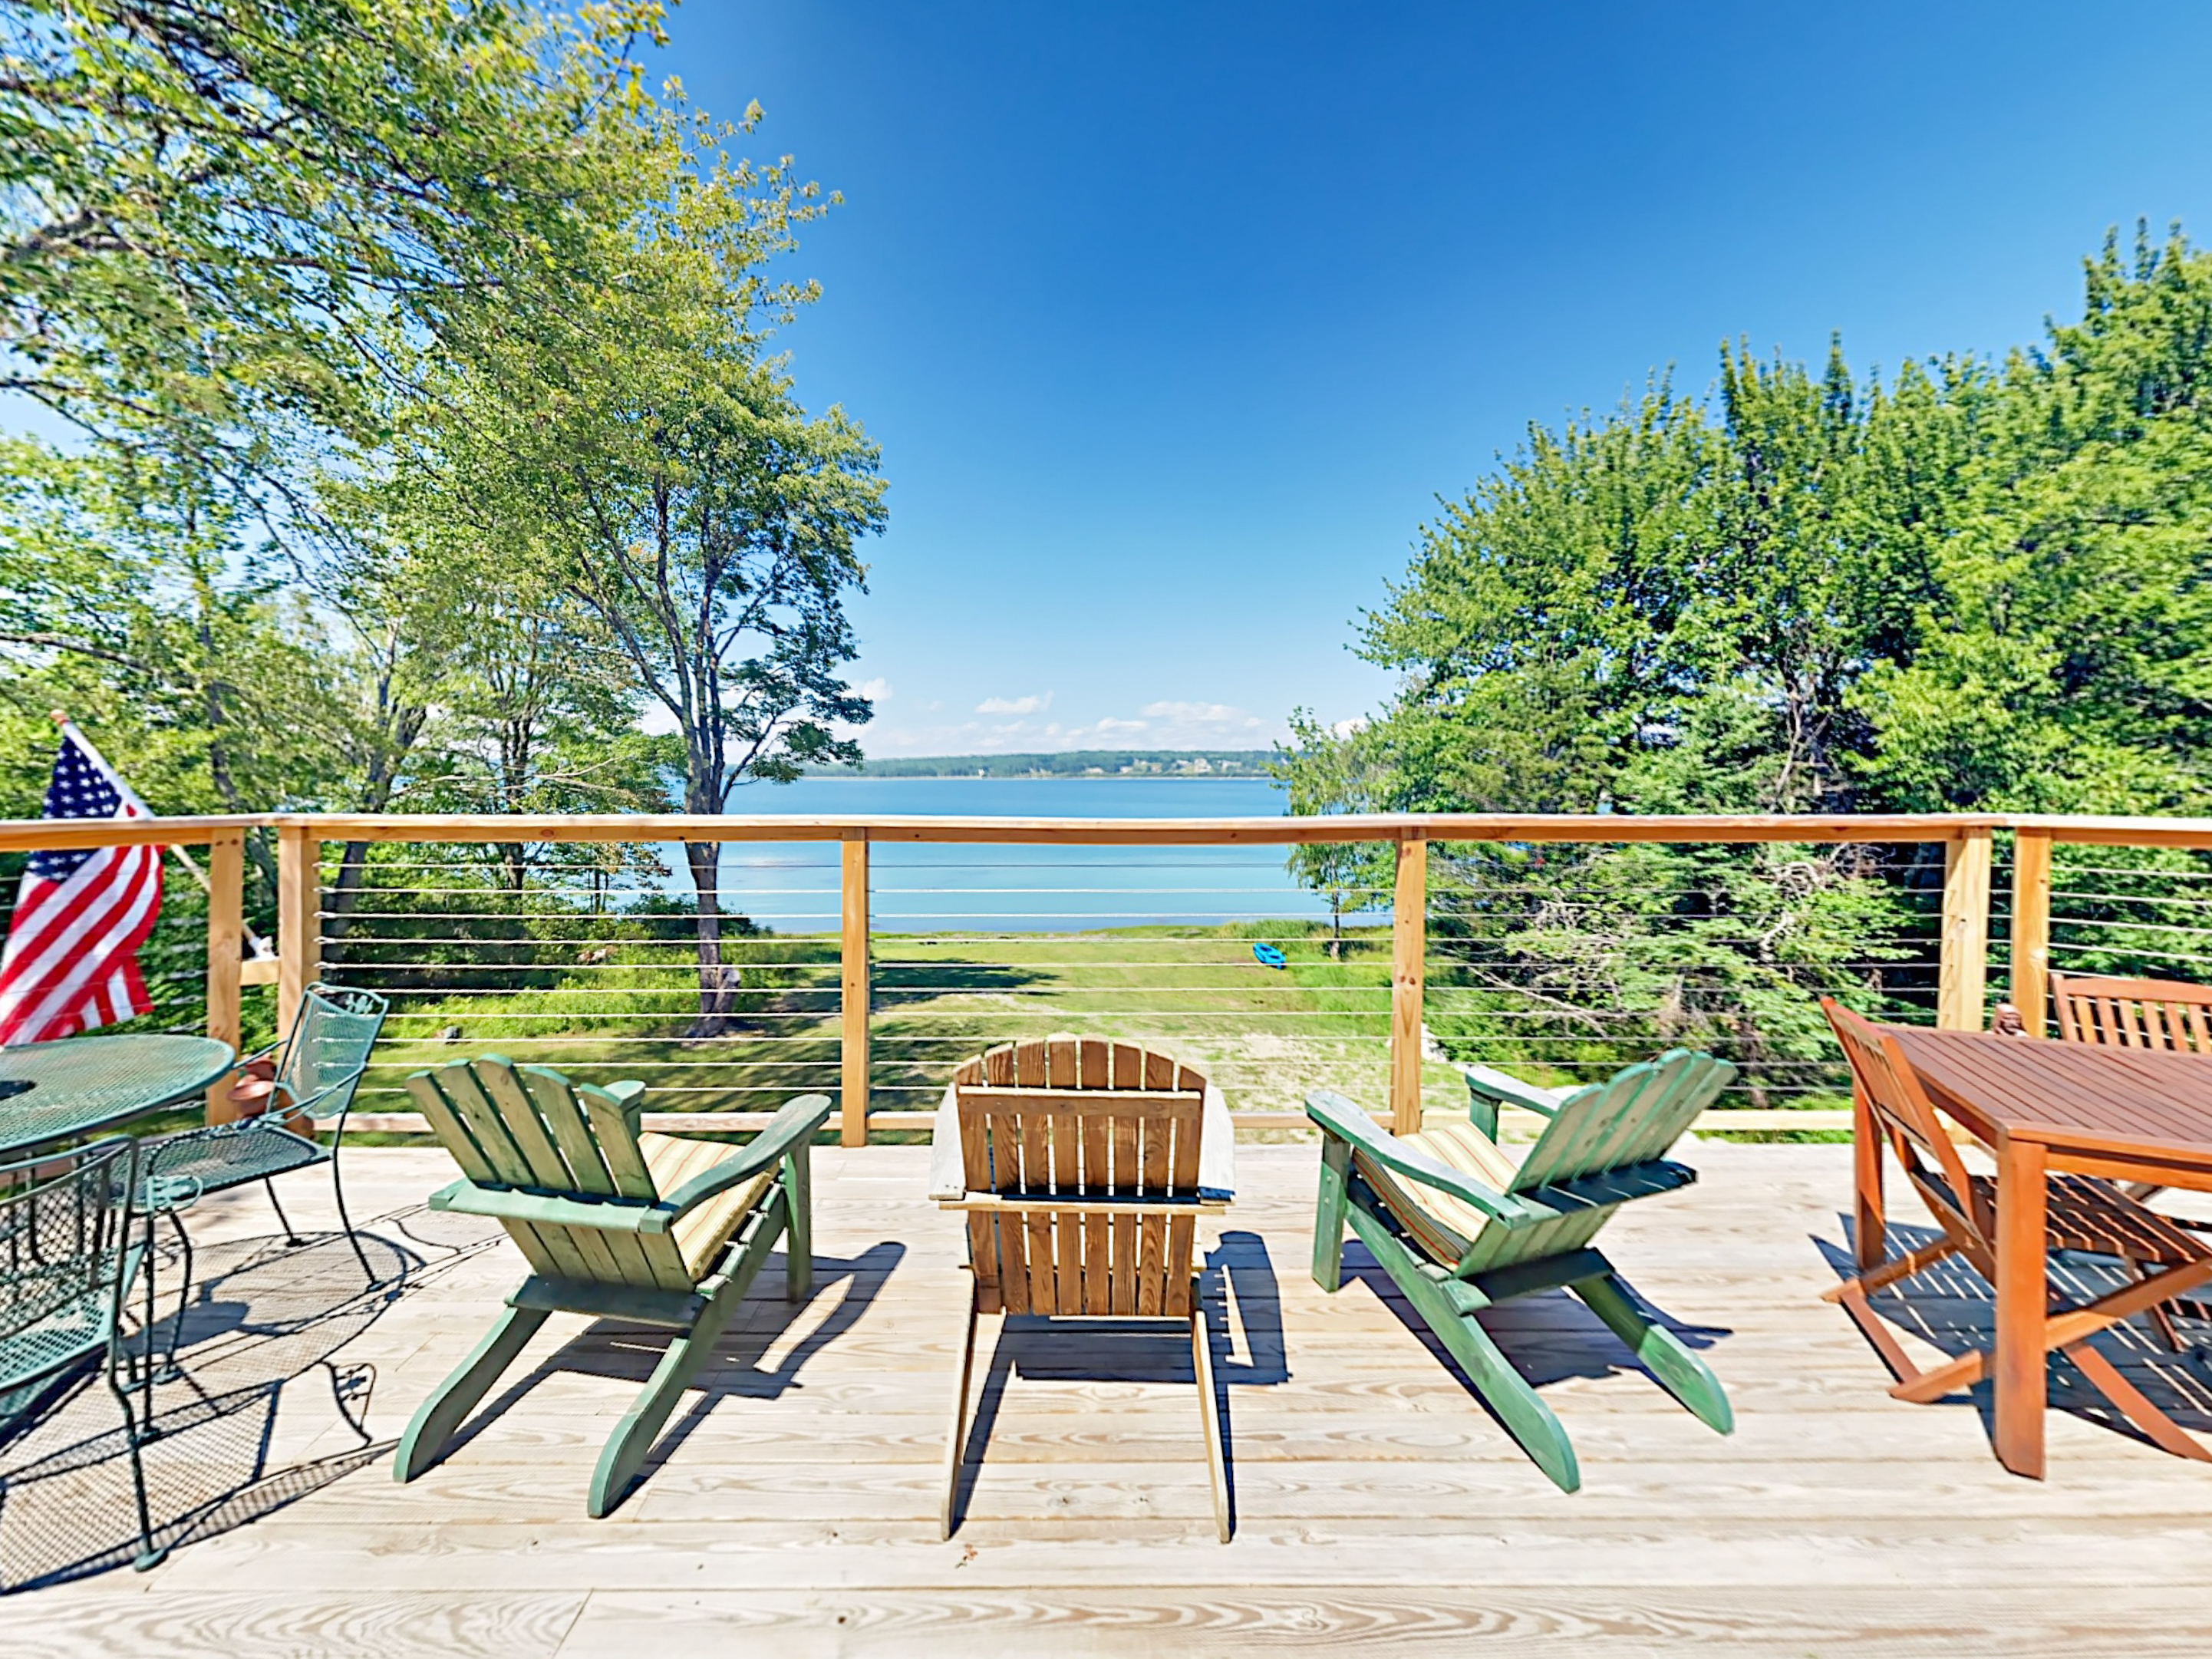 Lamoine ME Vacation Rental Welcome to Lamoine!